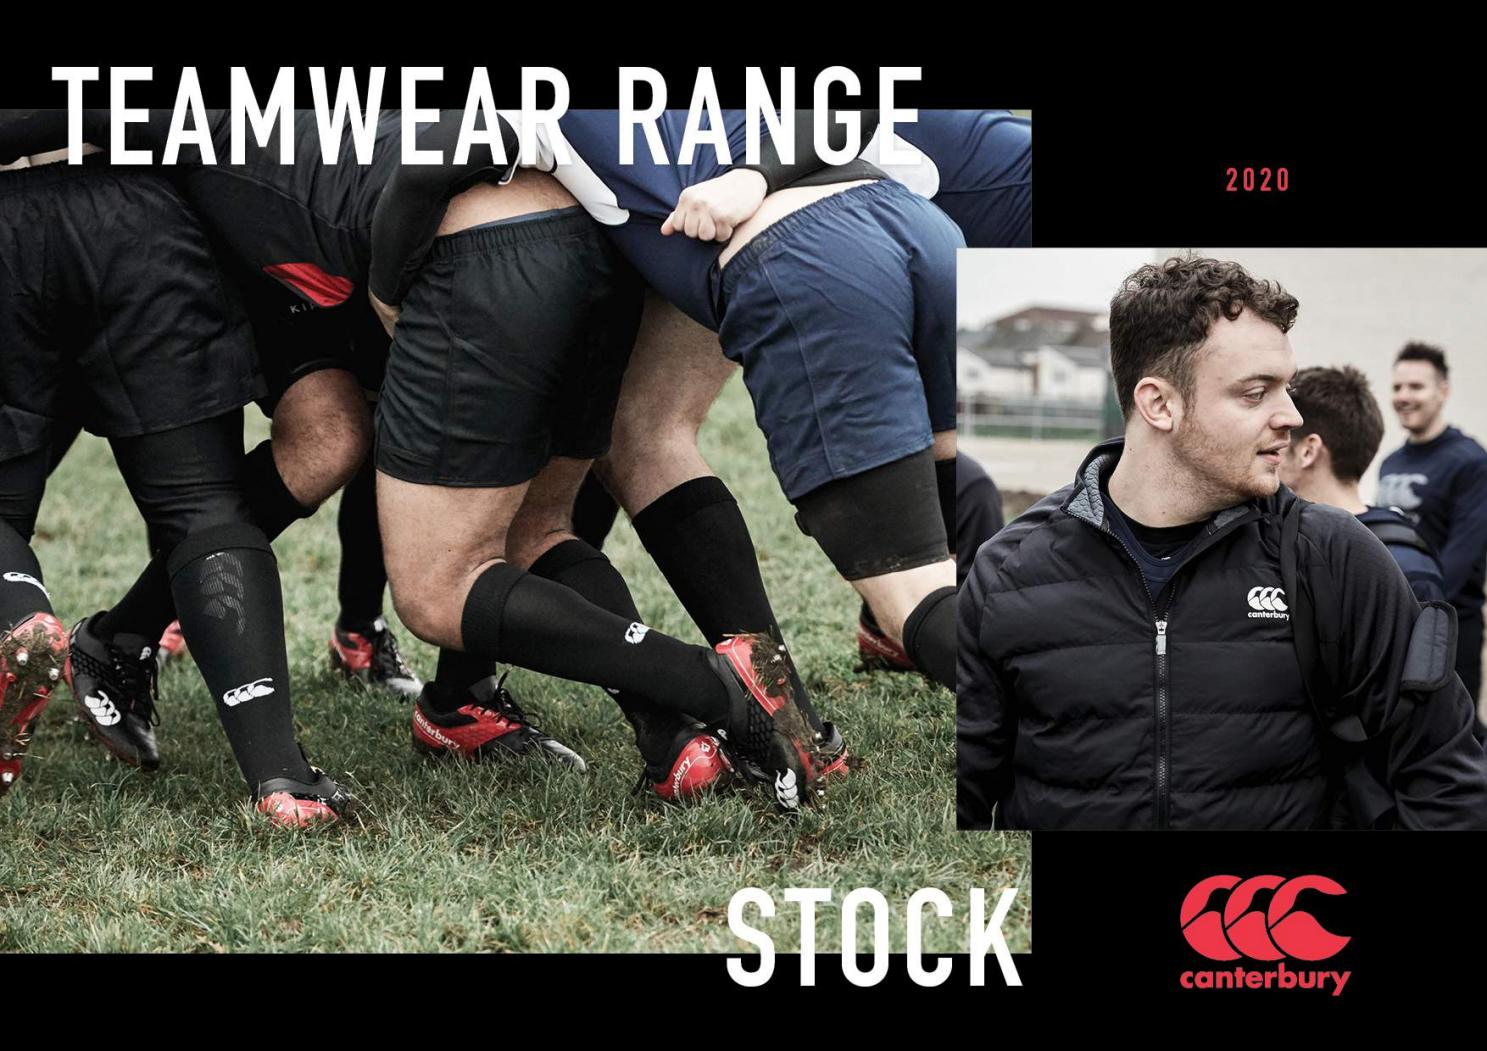 CANTERBURY PROTECTIVE WEAR | www.therugbyshop.com